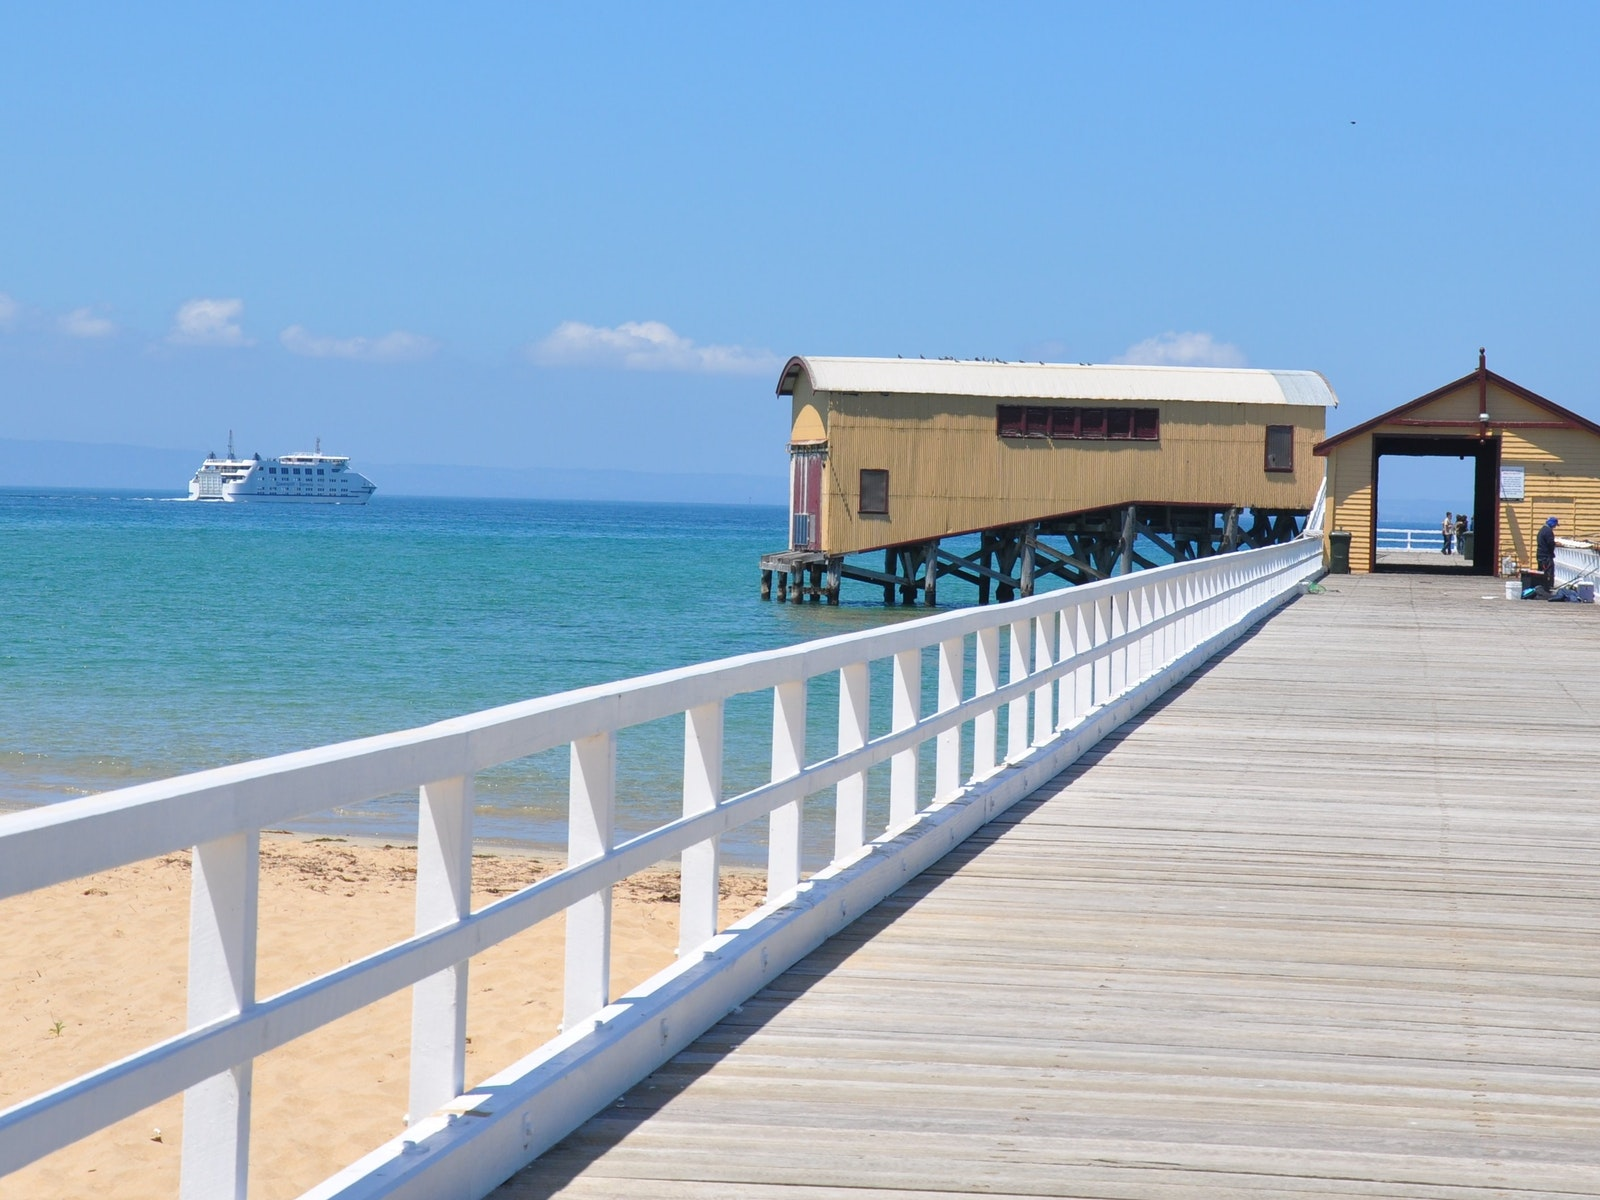 Queenscliff pier with ferry in background